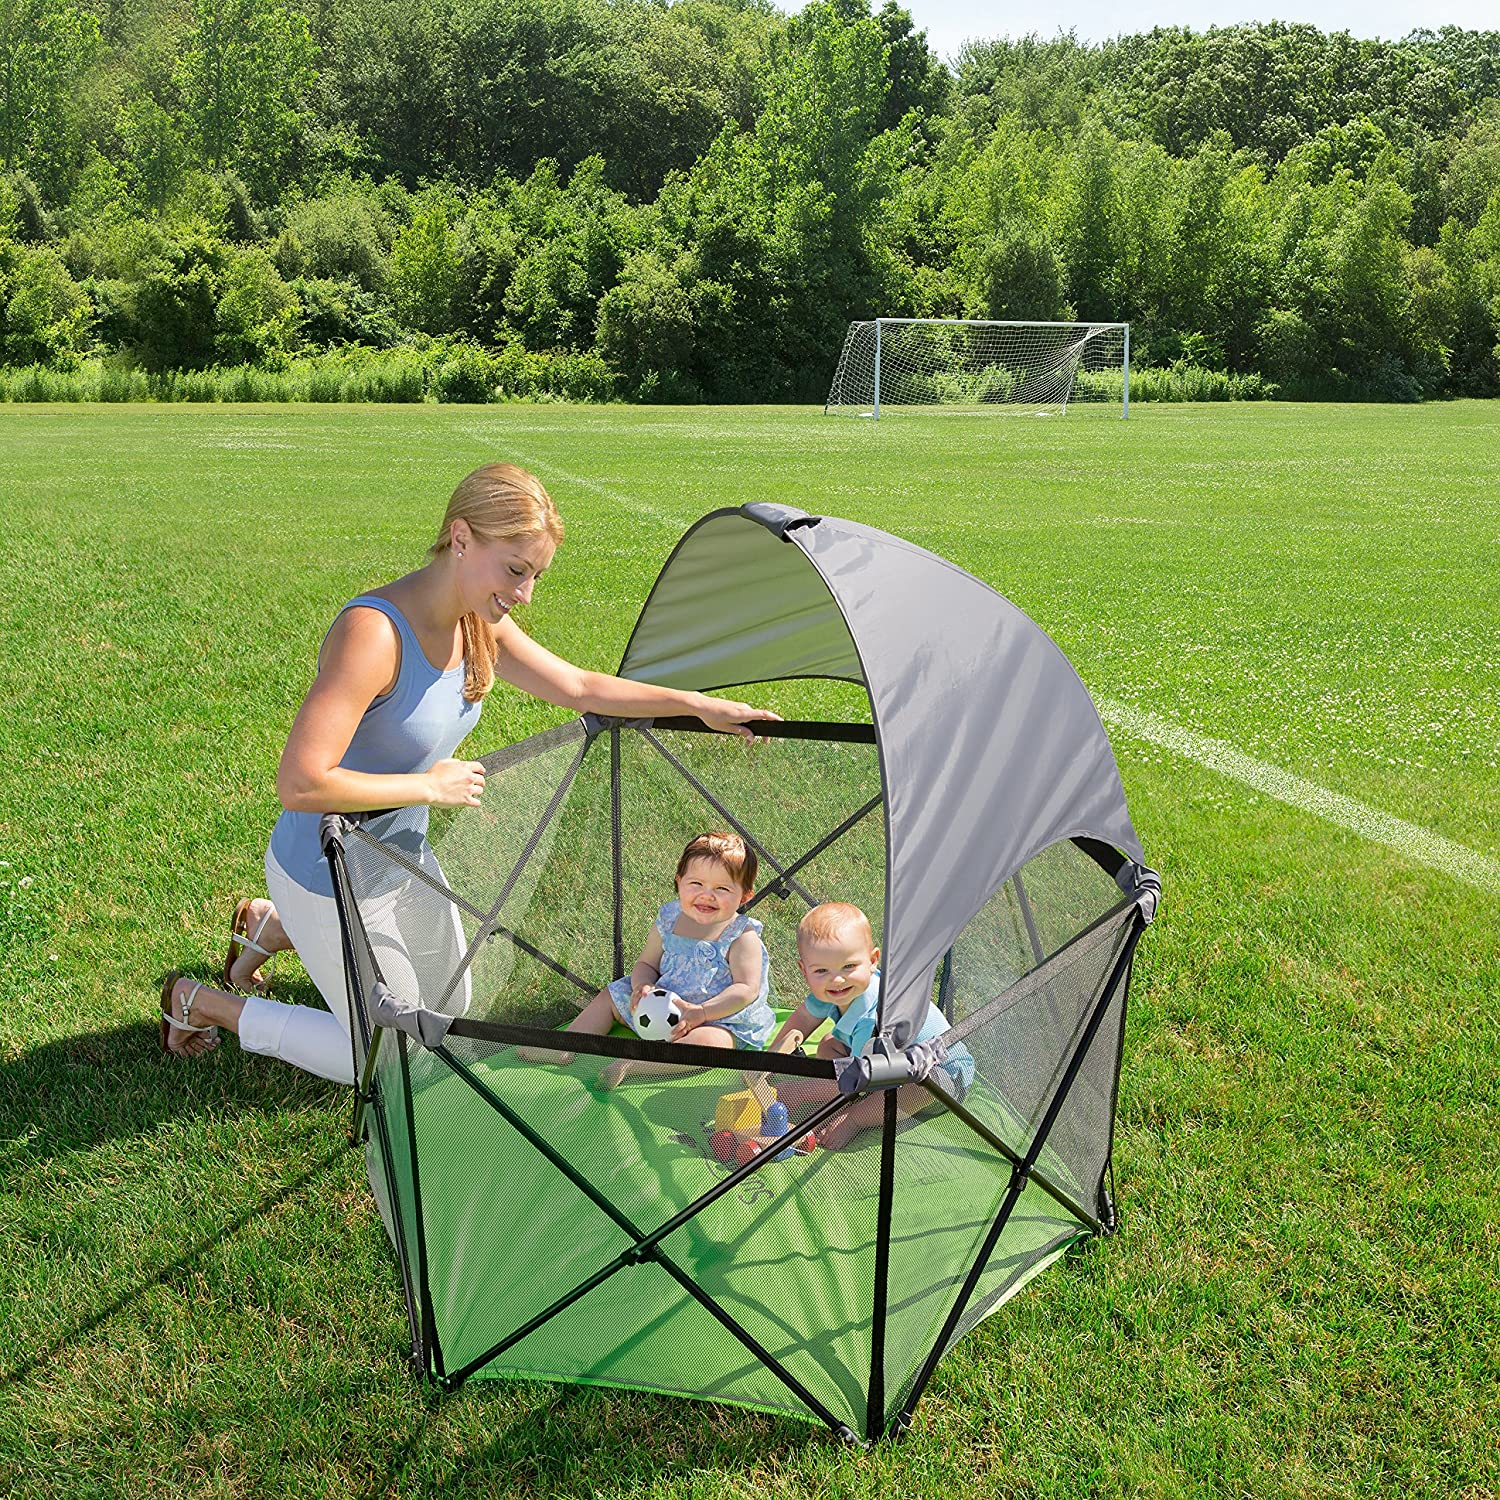 Amazon.com  Summer Infant Pop Nu0027 Play Ultimate Portable Playard  Baby & Amazon.com : Summer Infant Pop Nu0027 Play Ultimate Portable Playard ...